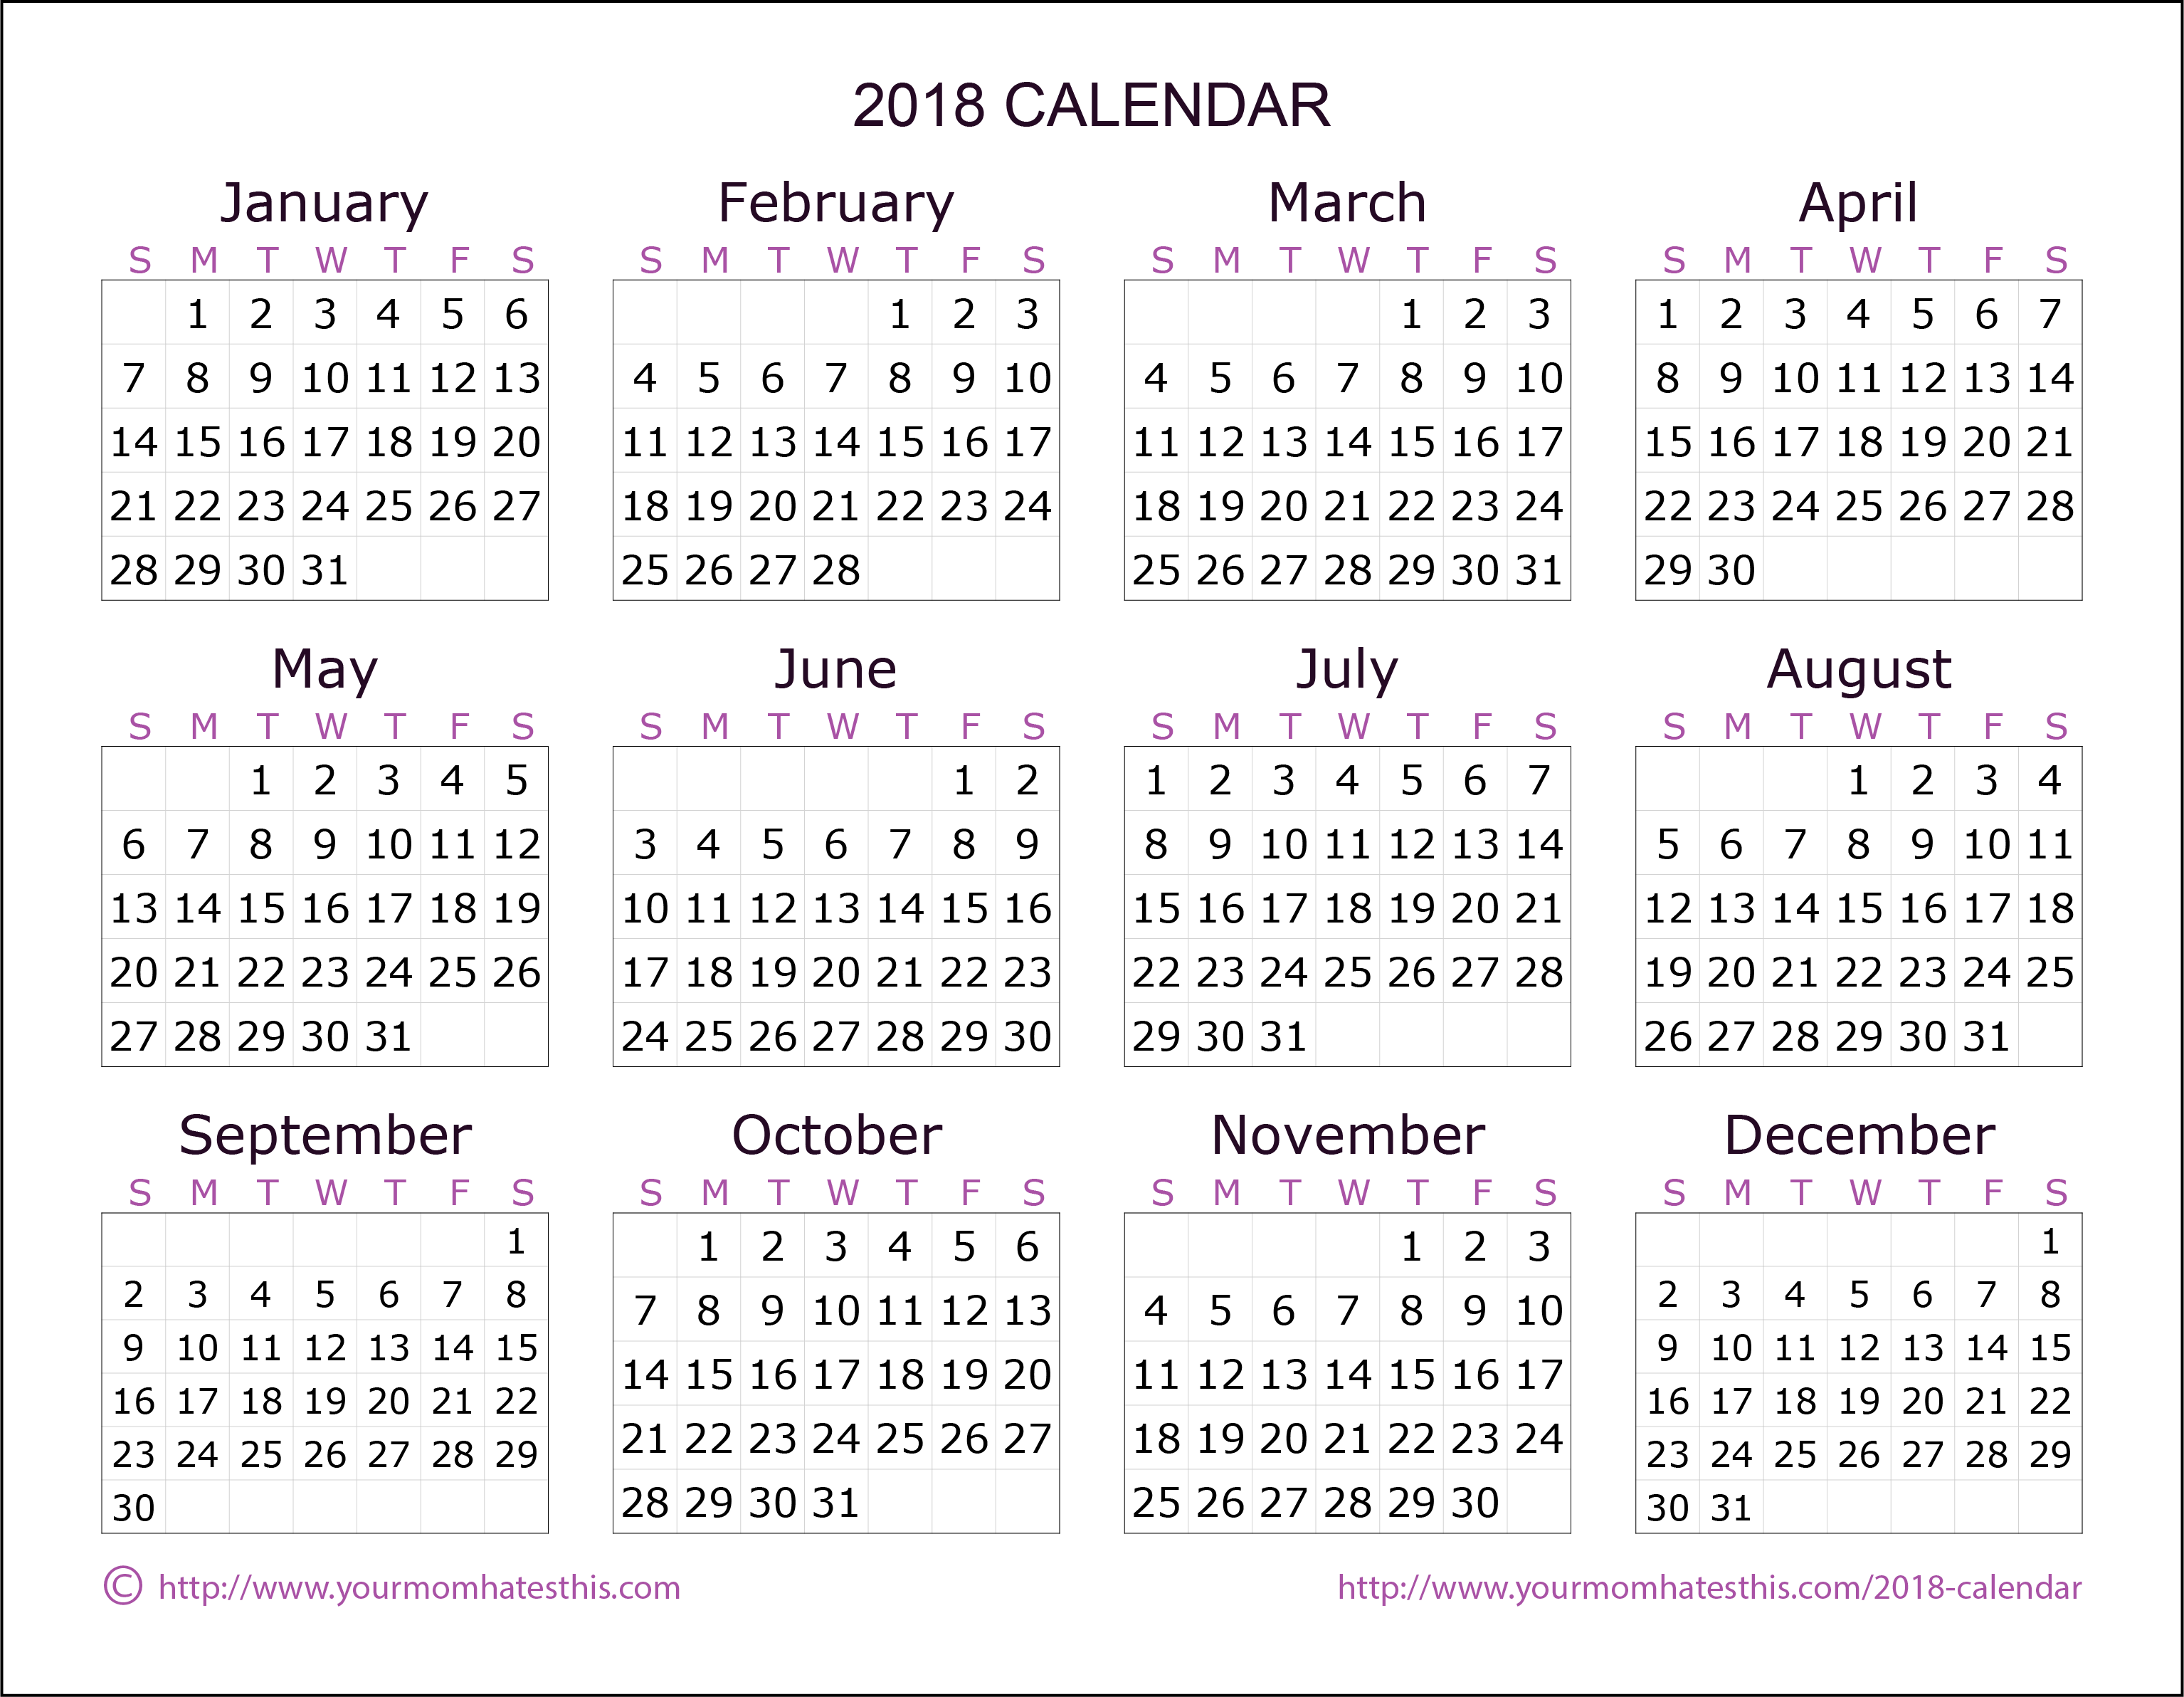 calendar overview of. Schedule clipart public holiday